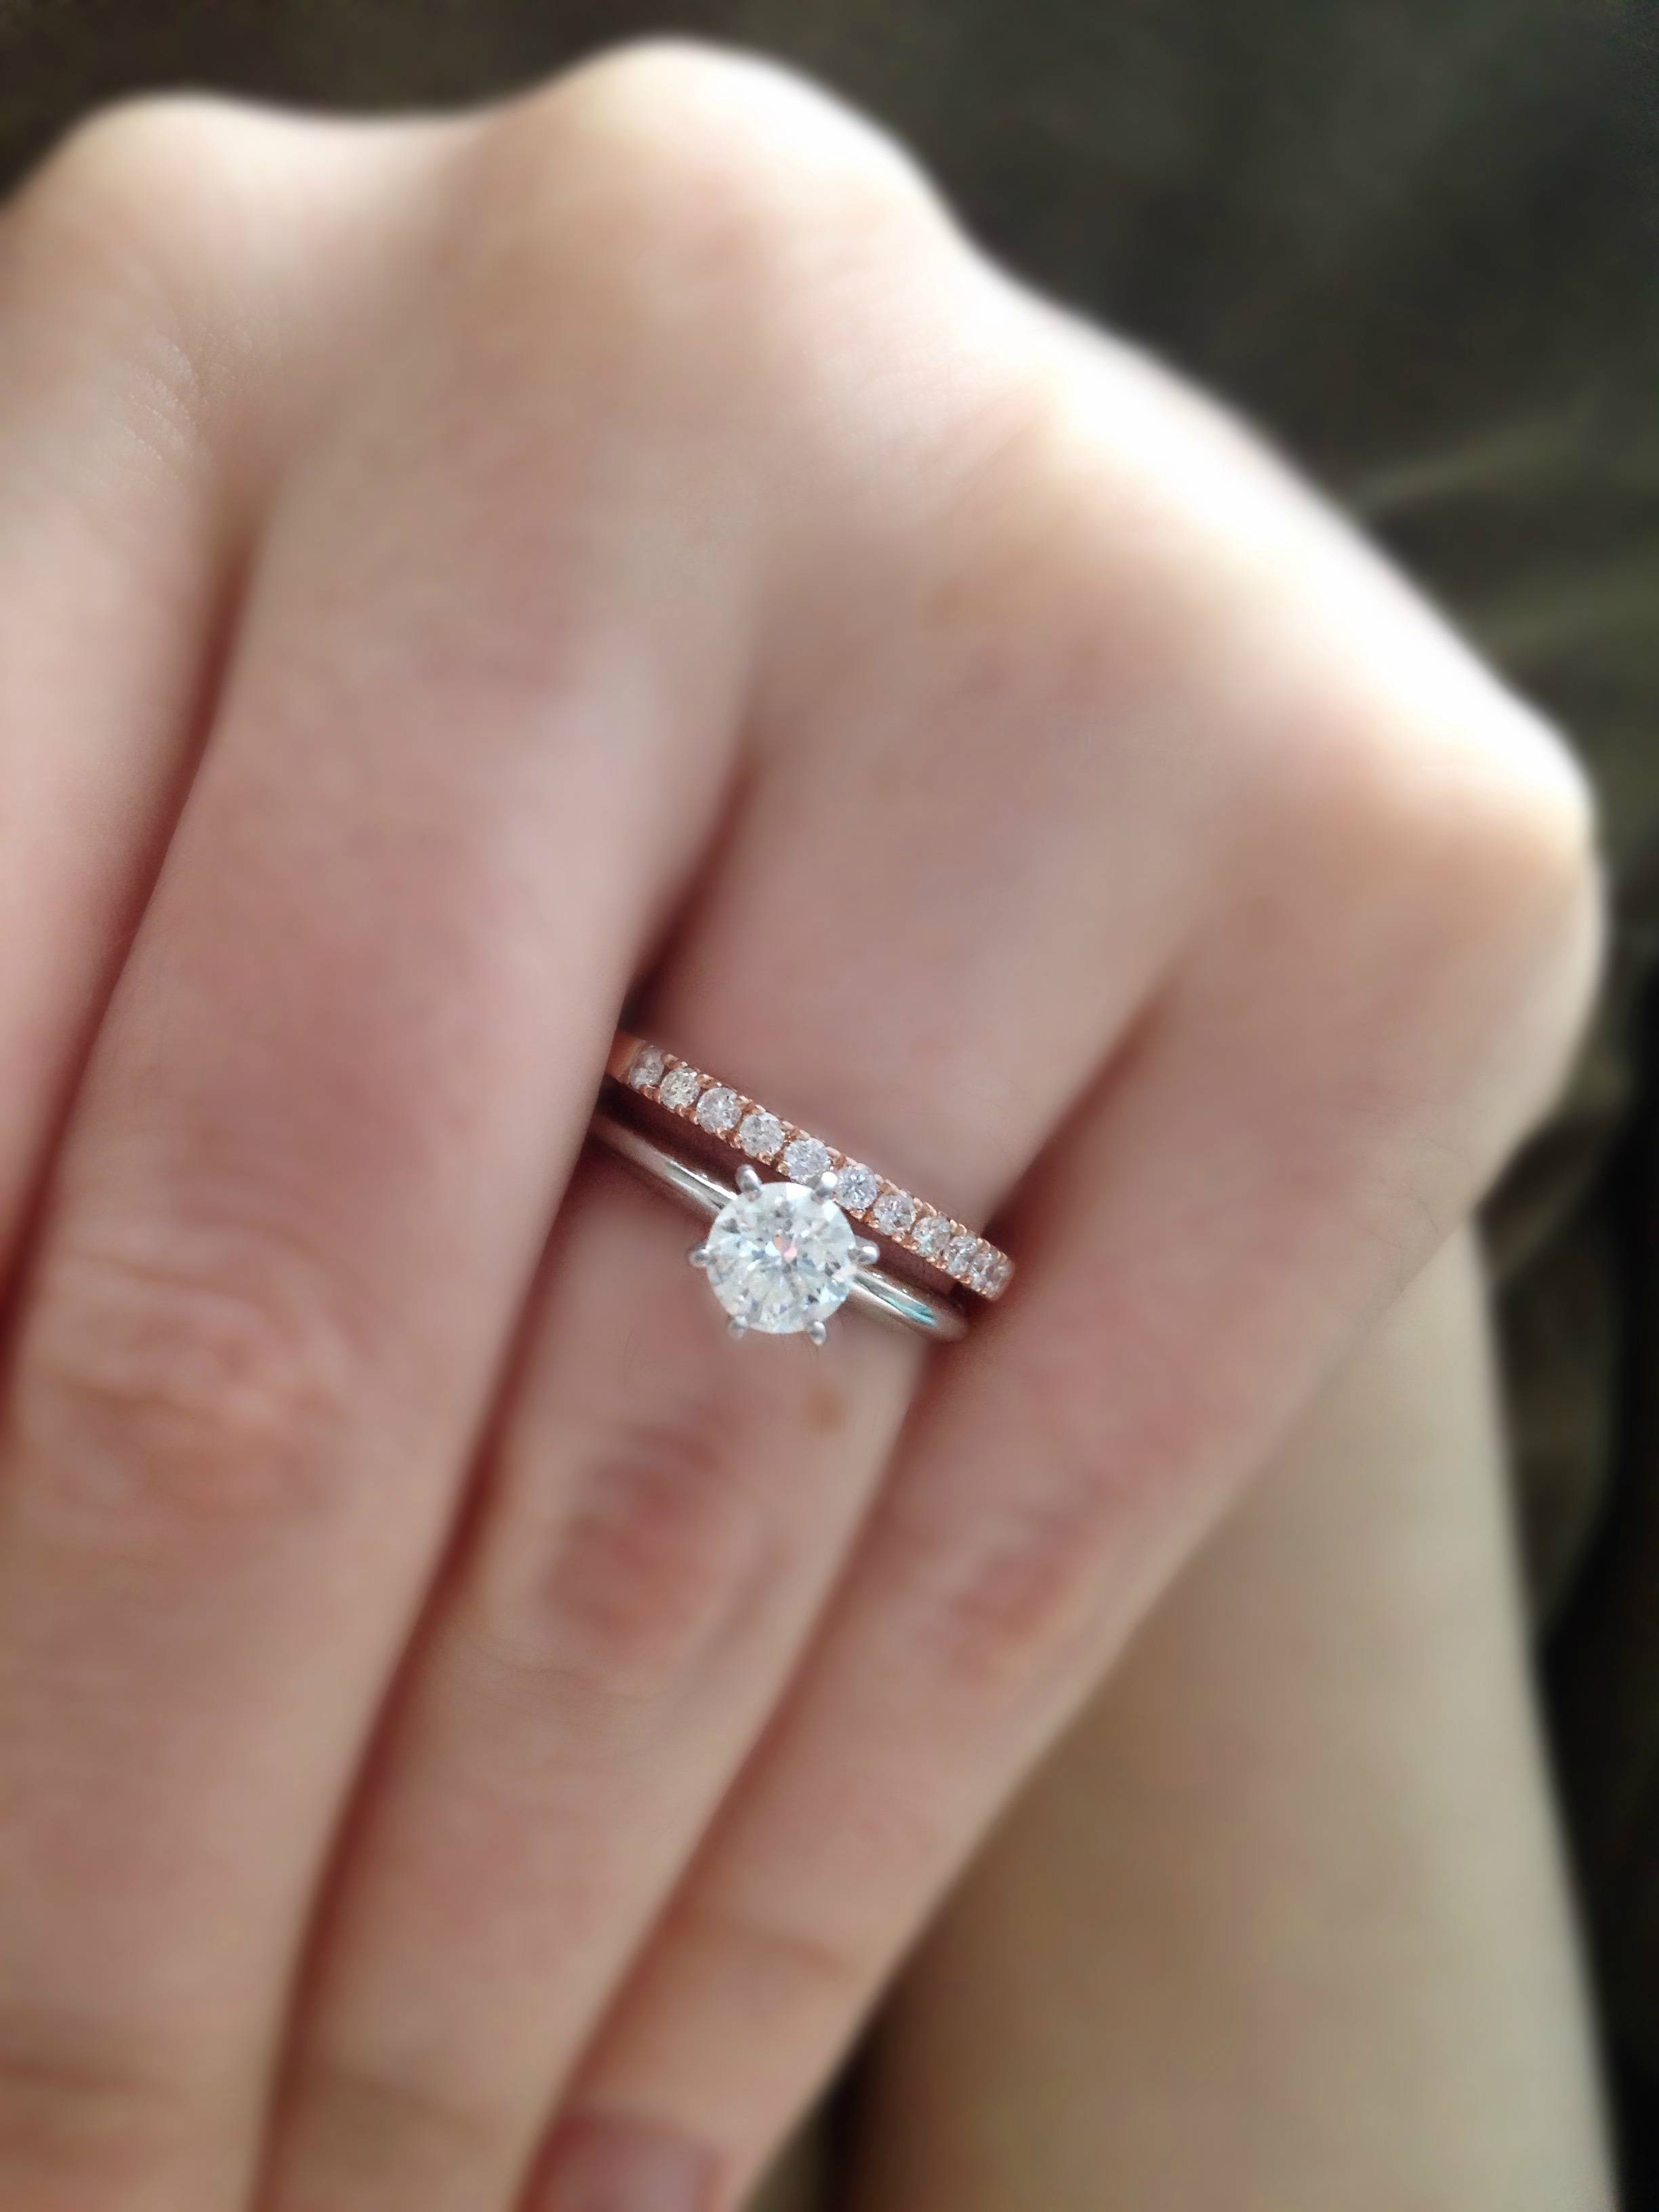 How Thin/thick Is Your Engagement Ring Band? – Weddingbee For  (View 10 of 15)